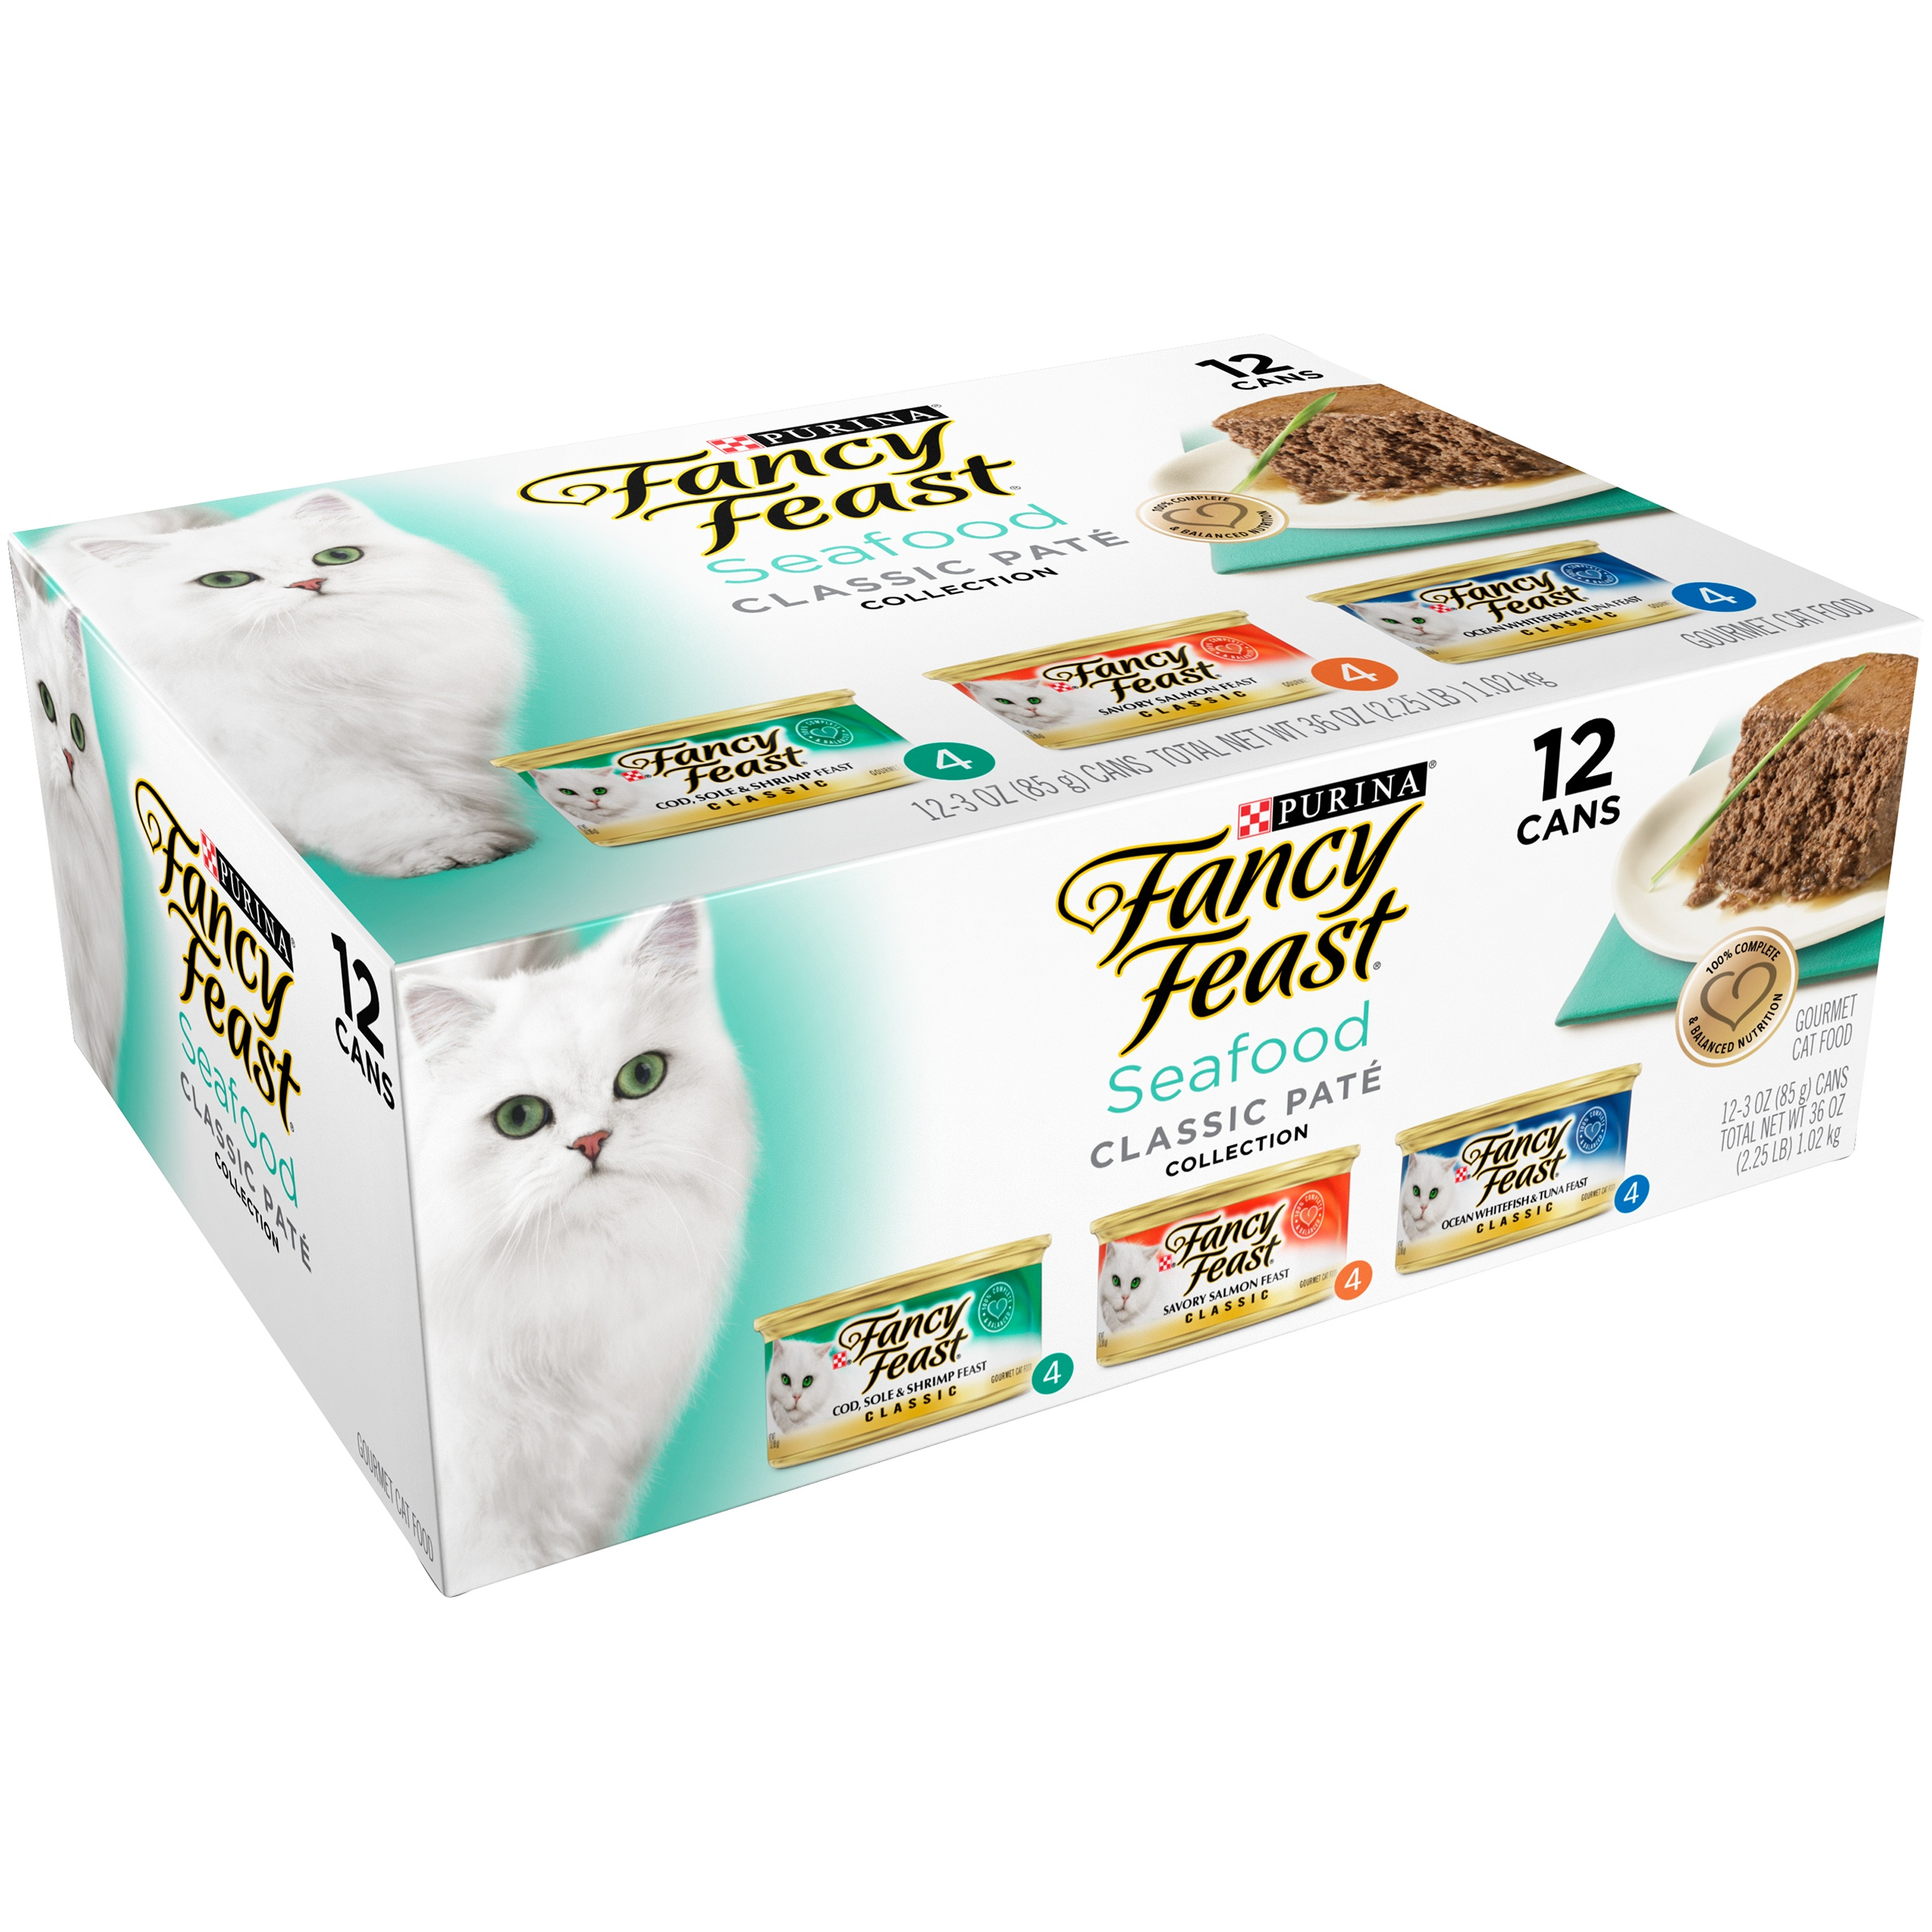 Purina Fancy Feast Classic Seafood Feast Collection Cat Food 12-3 oz. Cans